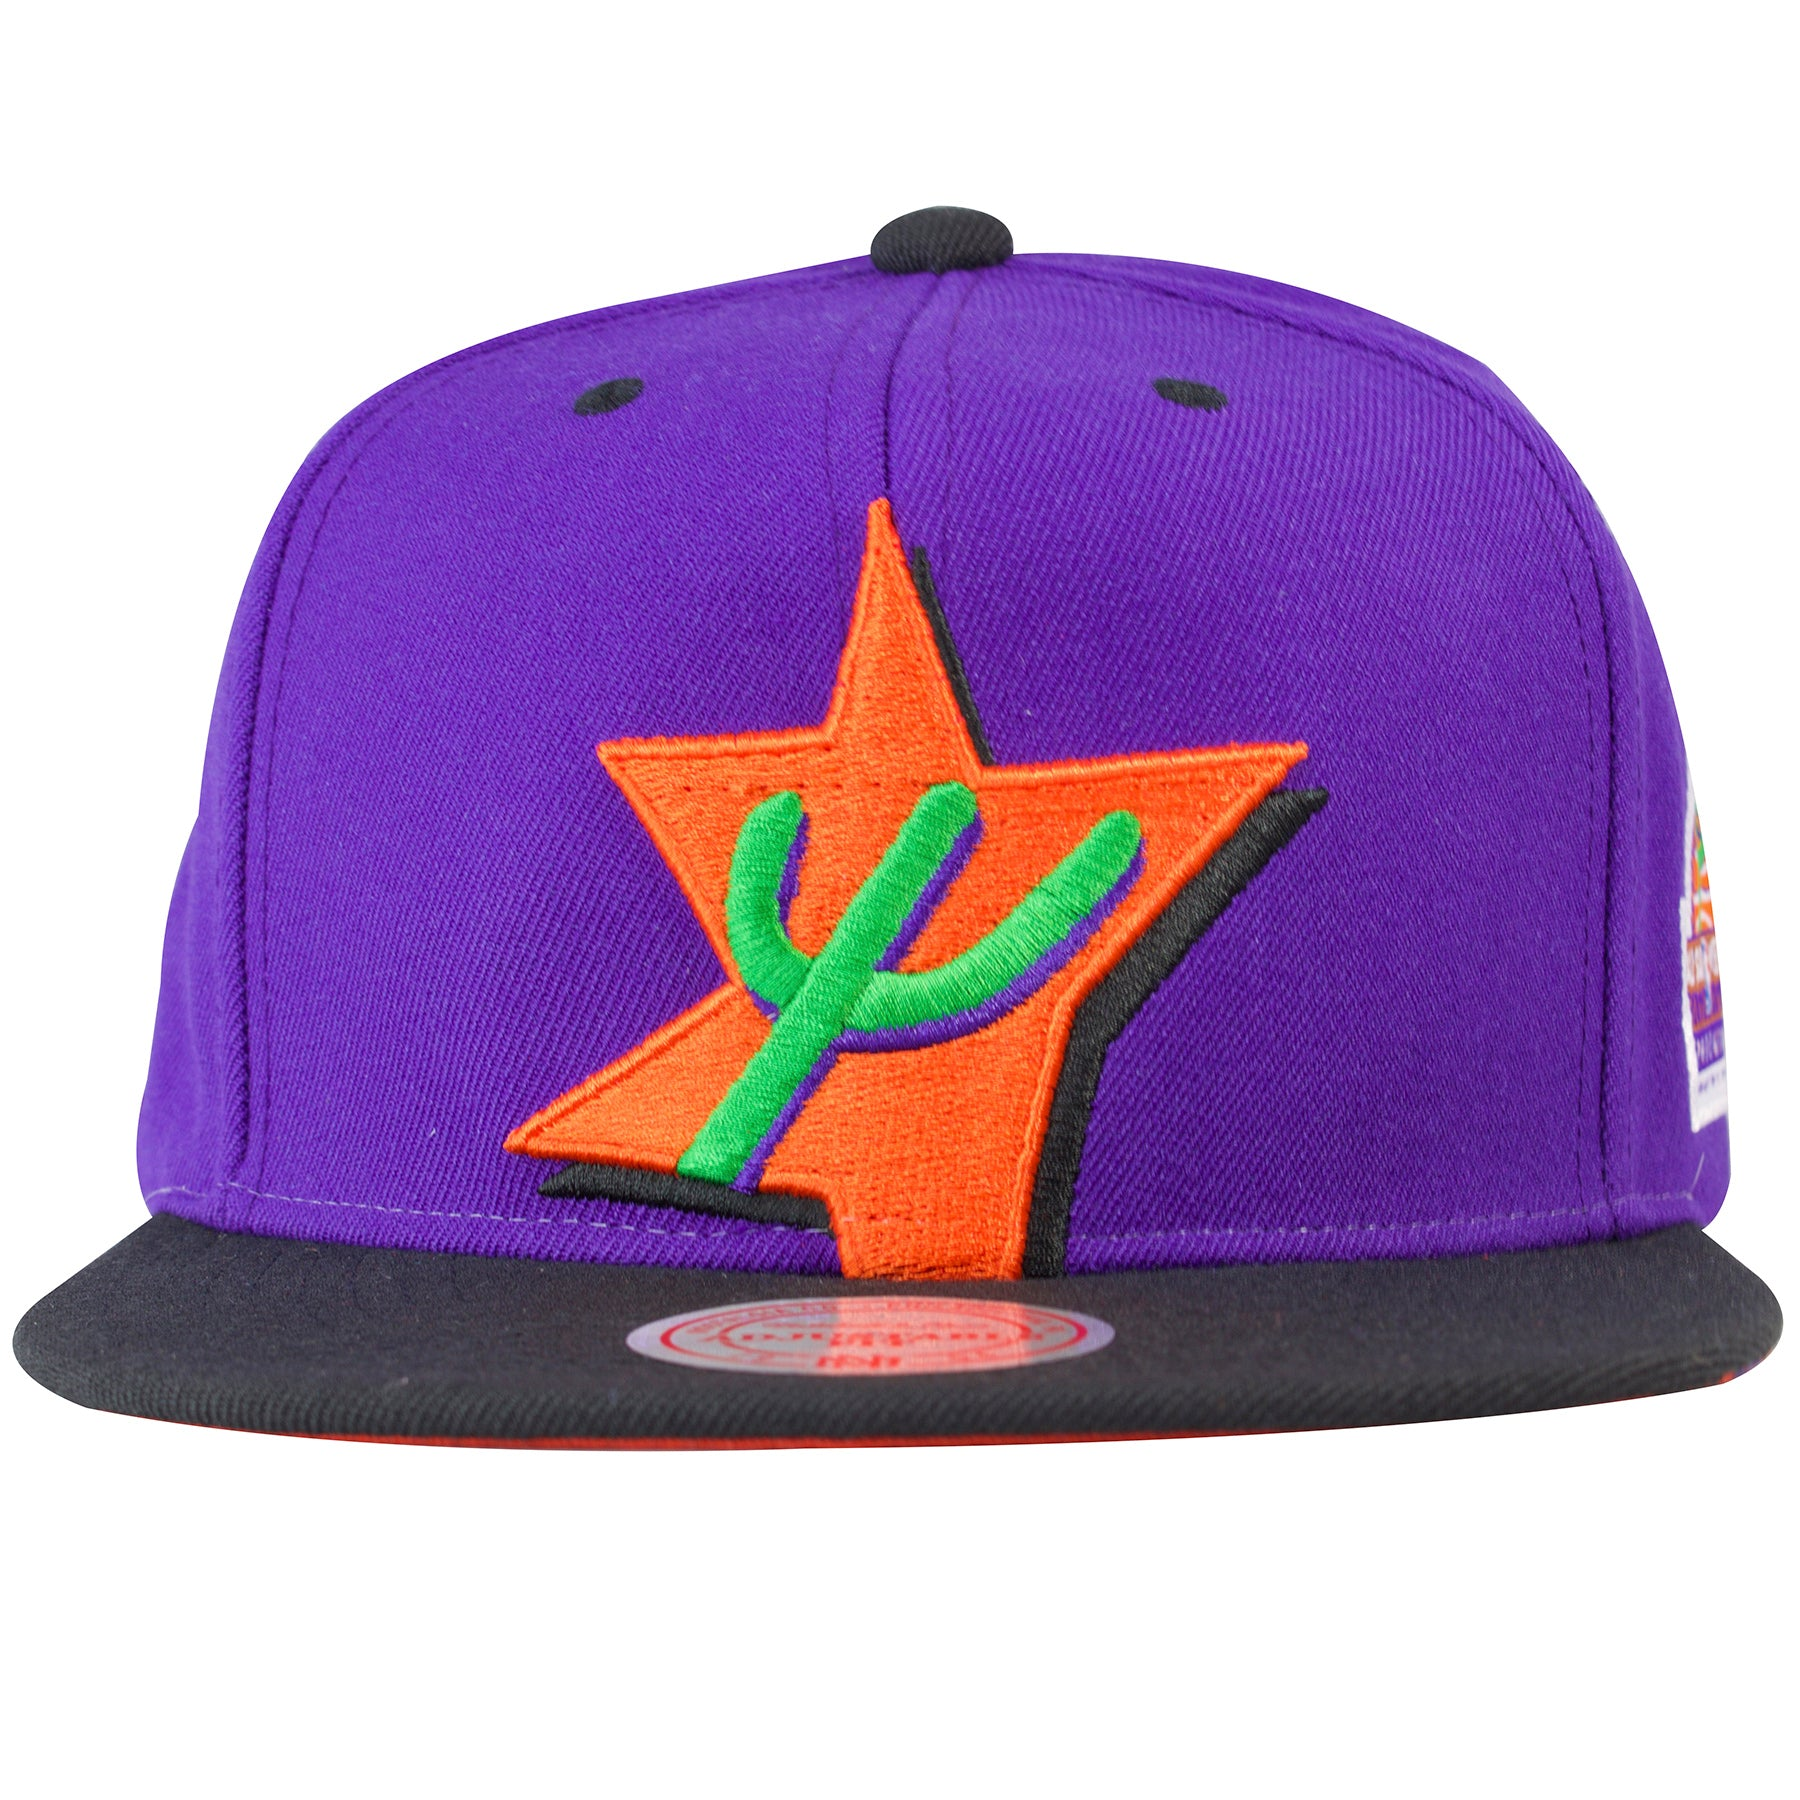 9217be6067e on the front of the 1995 nba all astar weekend snapback hat is the 1996 nba